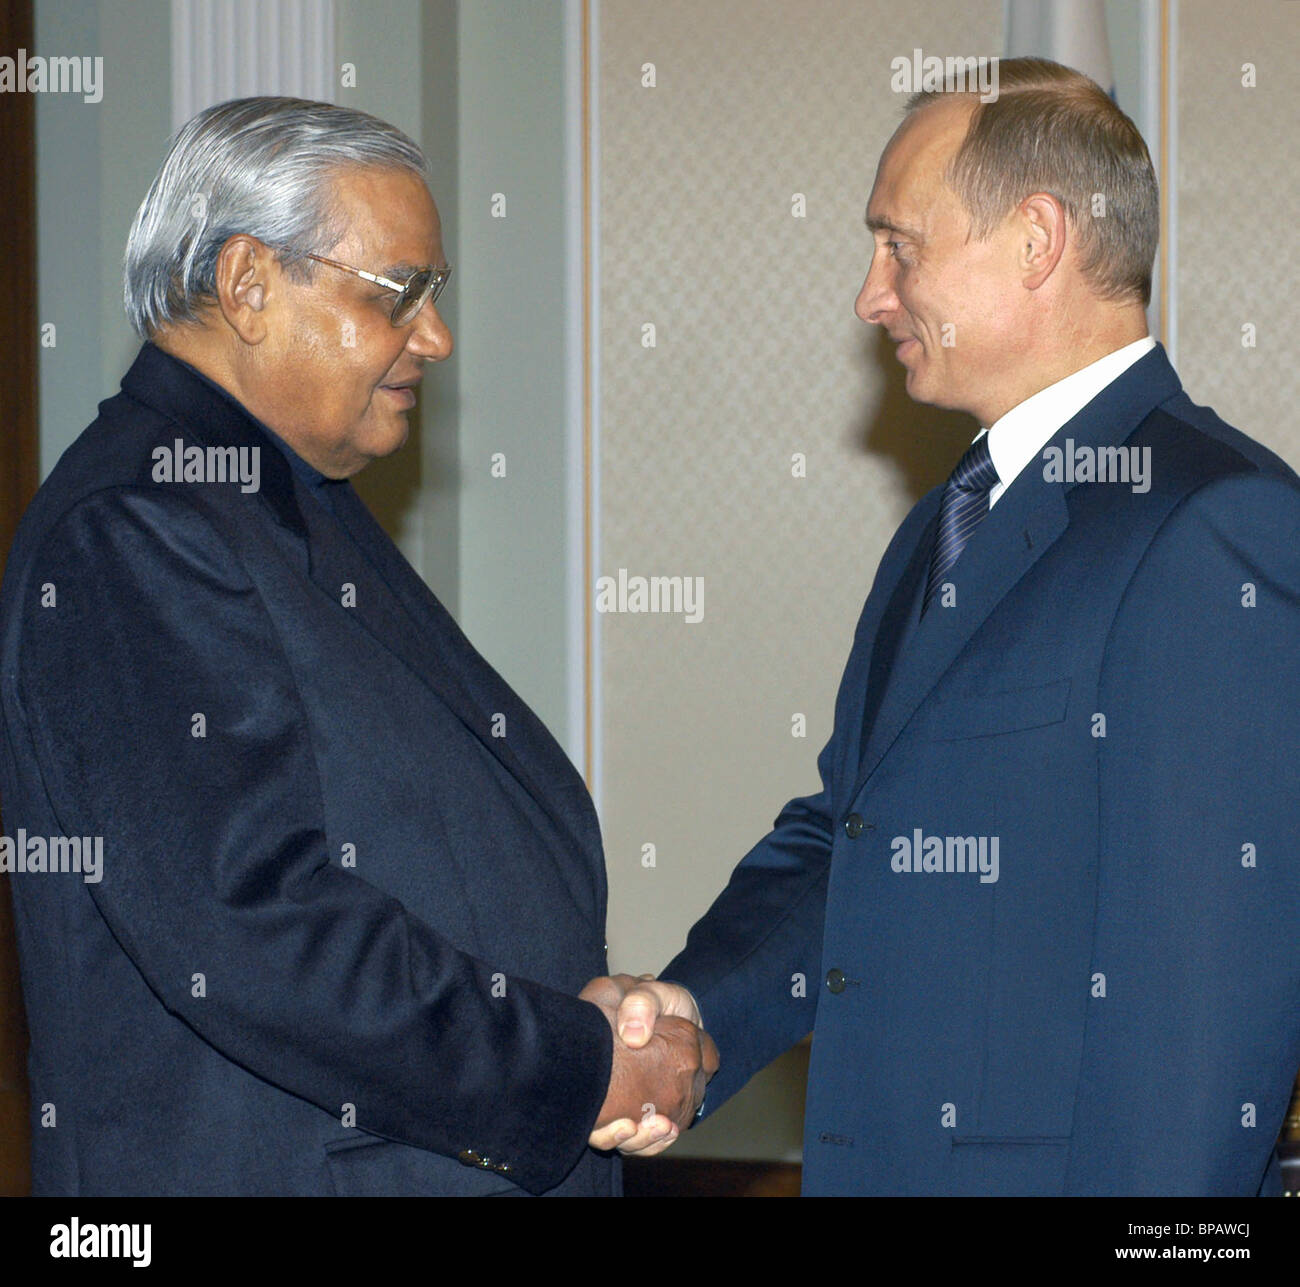 Meeting of President of Russia with Prime Minister of India - Stock Image